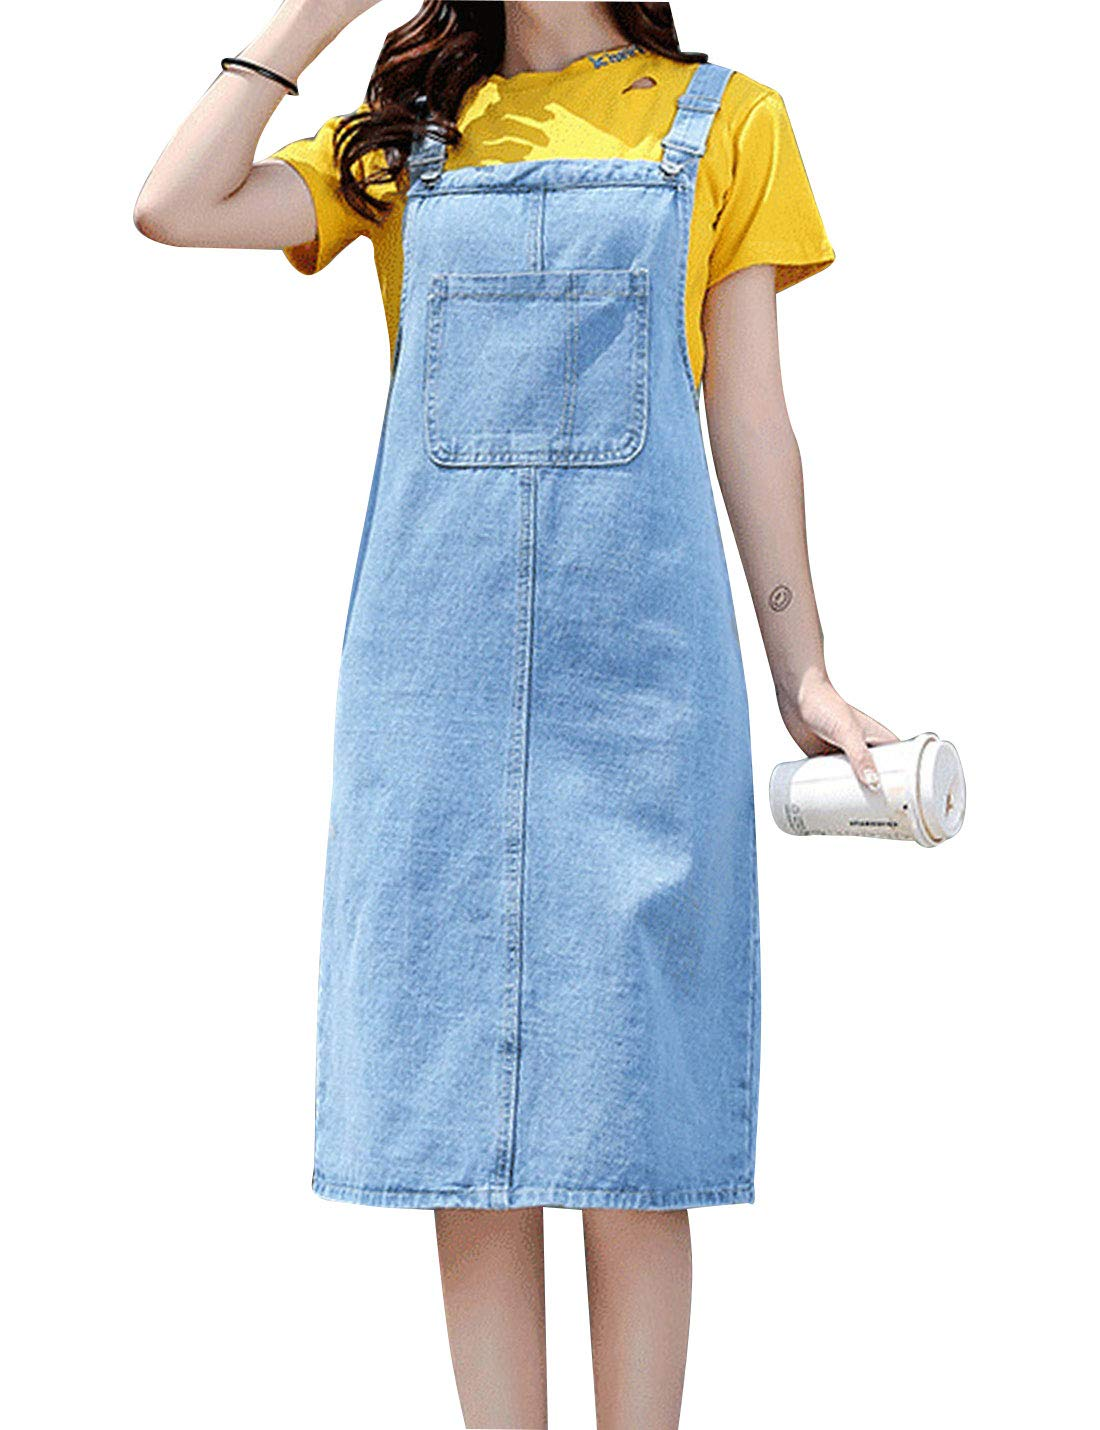 Available at Amazon: Omoone Women's Casual Strap Denim Pinafore Bib Overall A Line Dress with Pockets